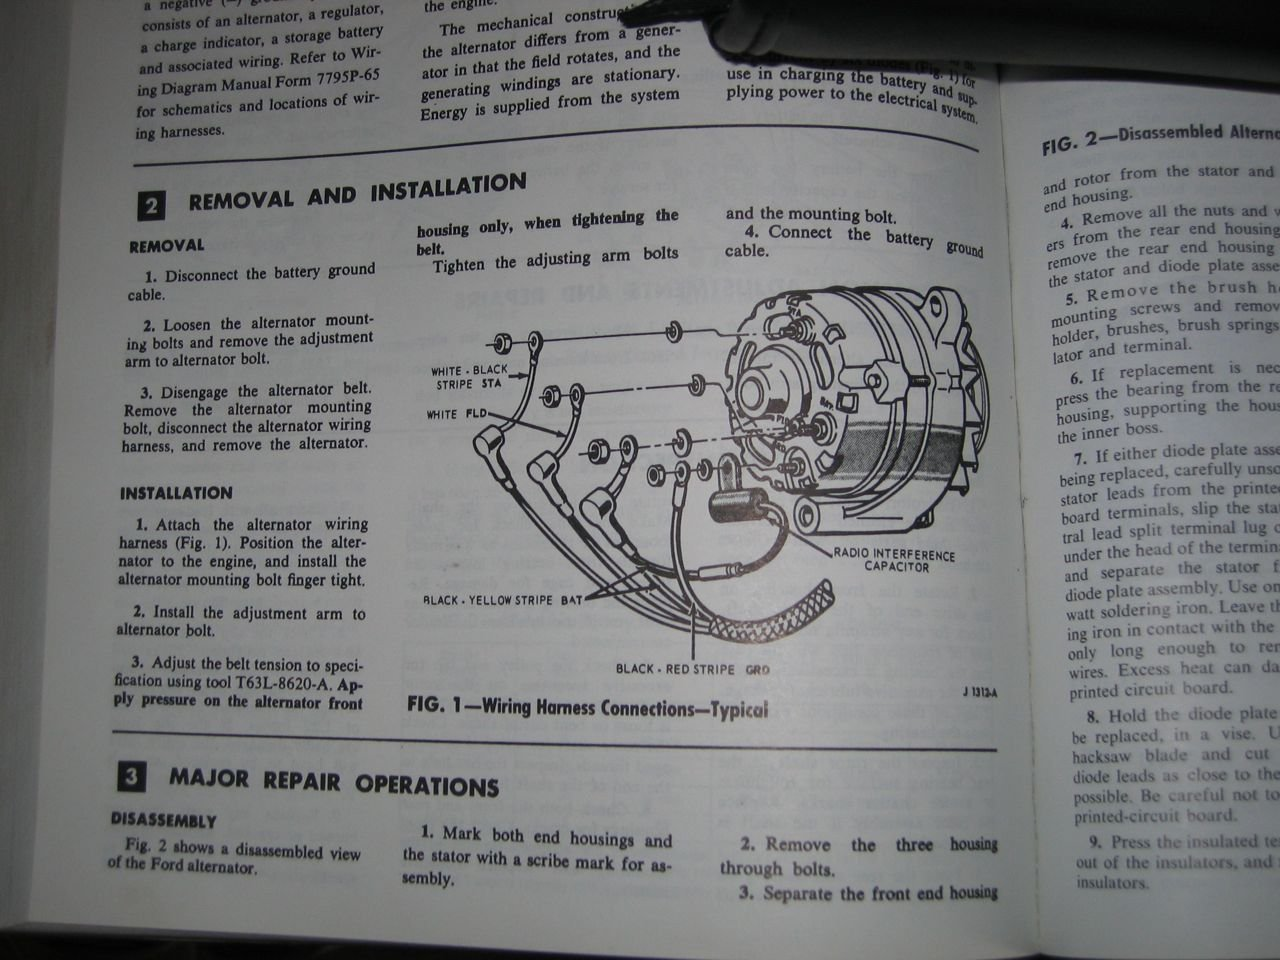 93328d1268767403 1966 mustang alternator wiring img_0749 1966 mustang alternator wiring ford mustang forum 1965 Mustang Restoration Guide at gsmx.co